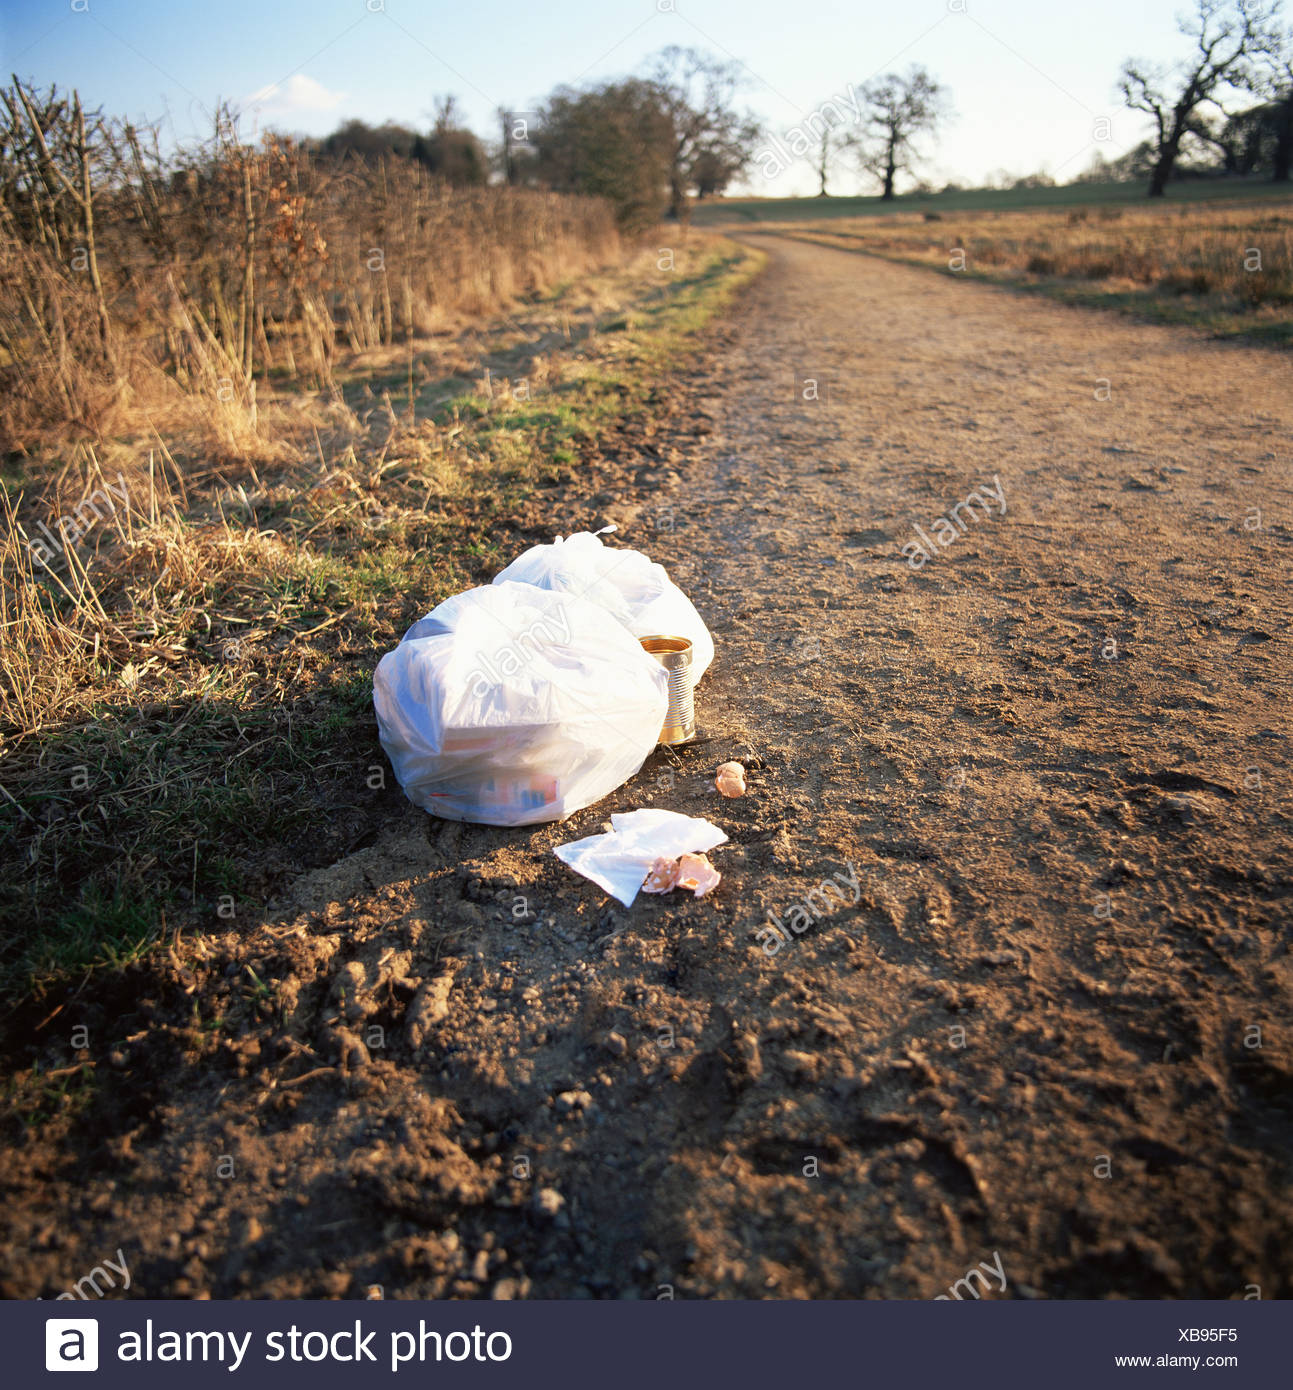 Rubbish left by a path - Stock Image